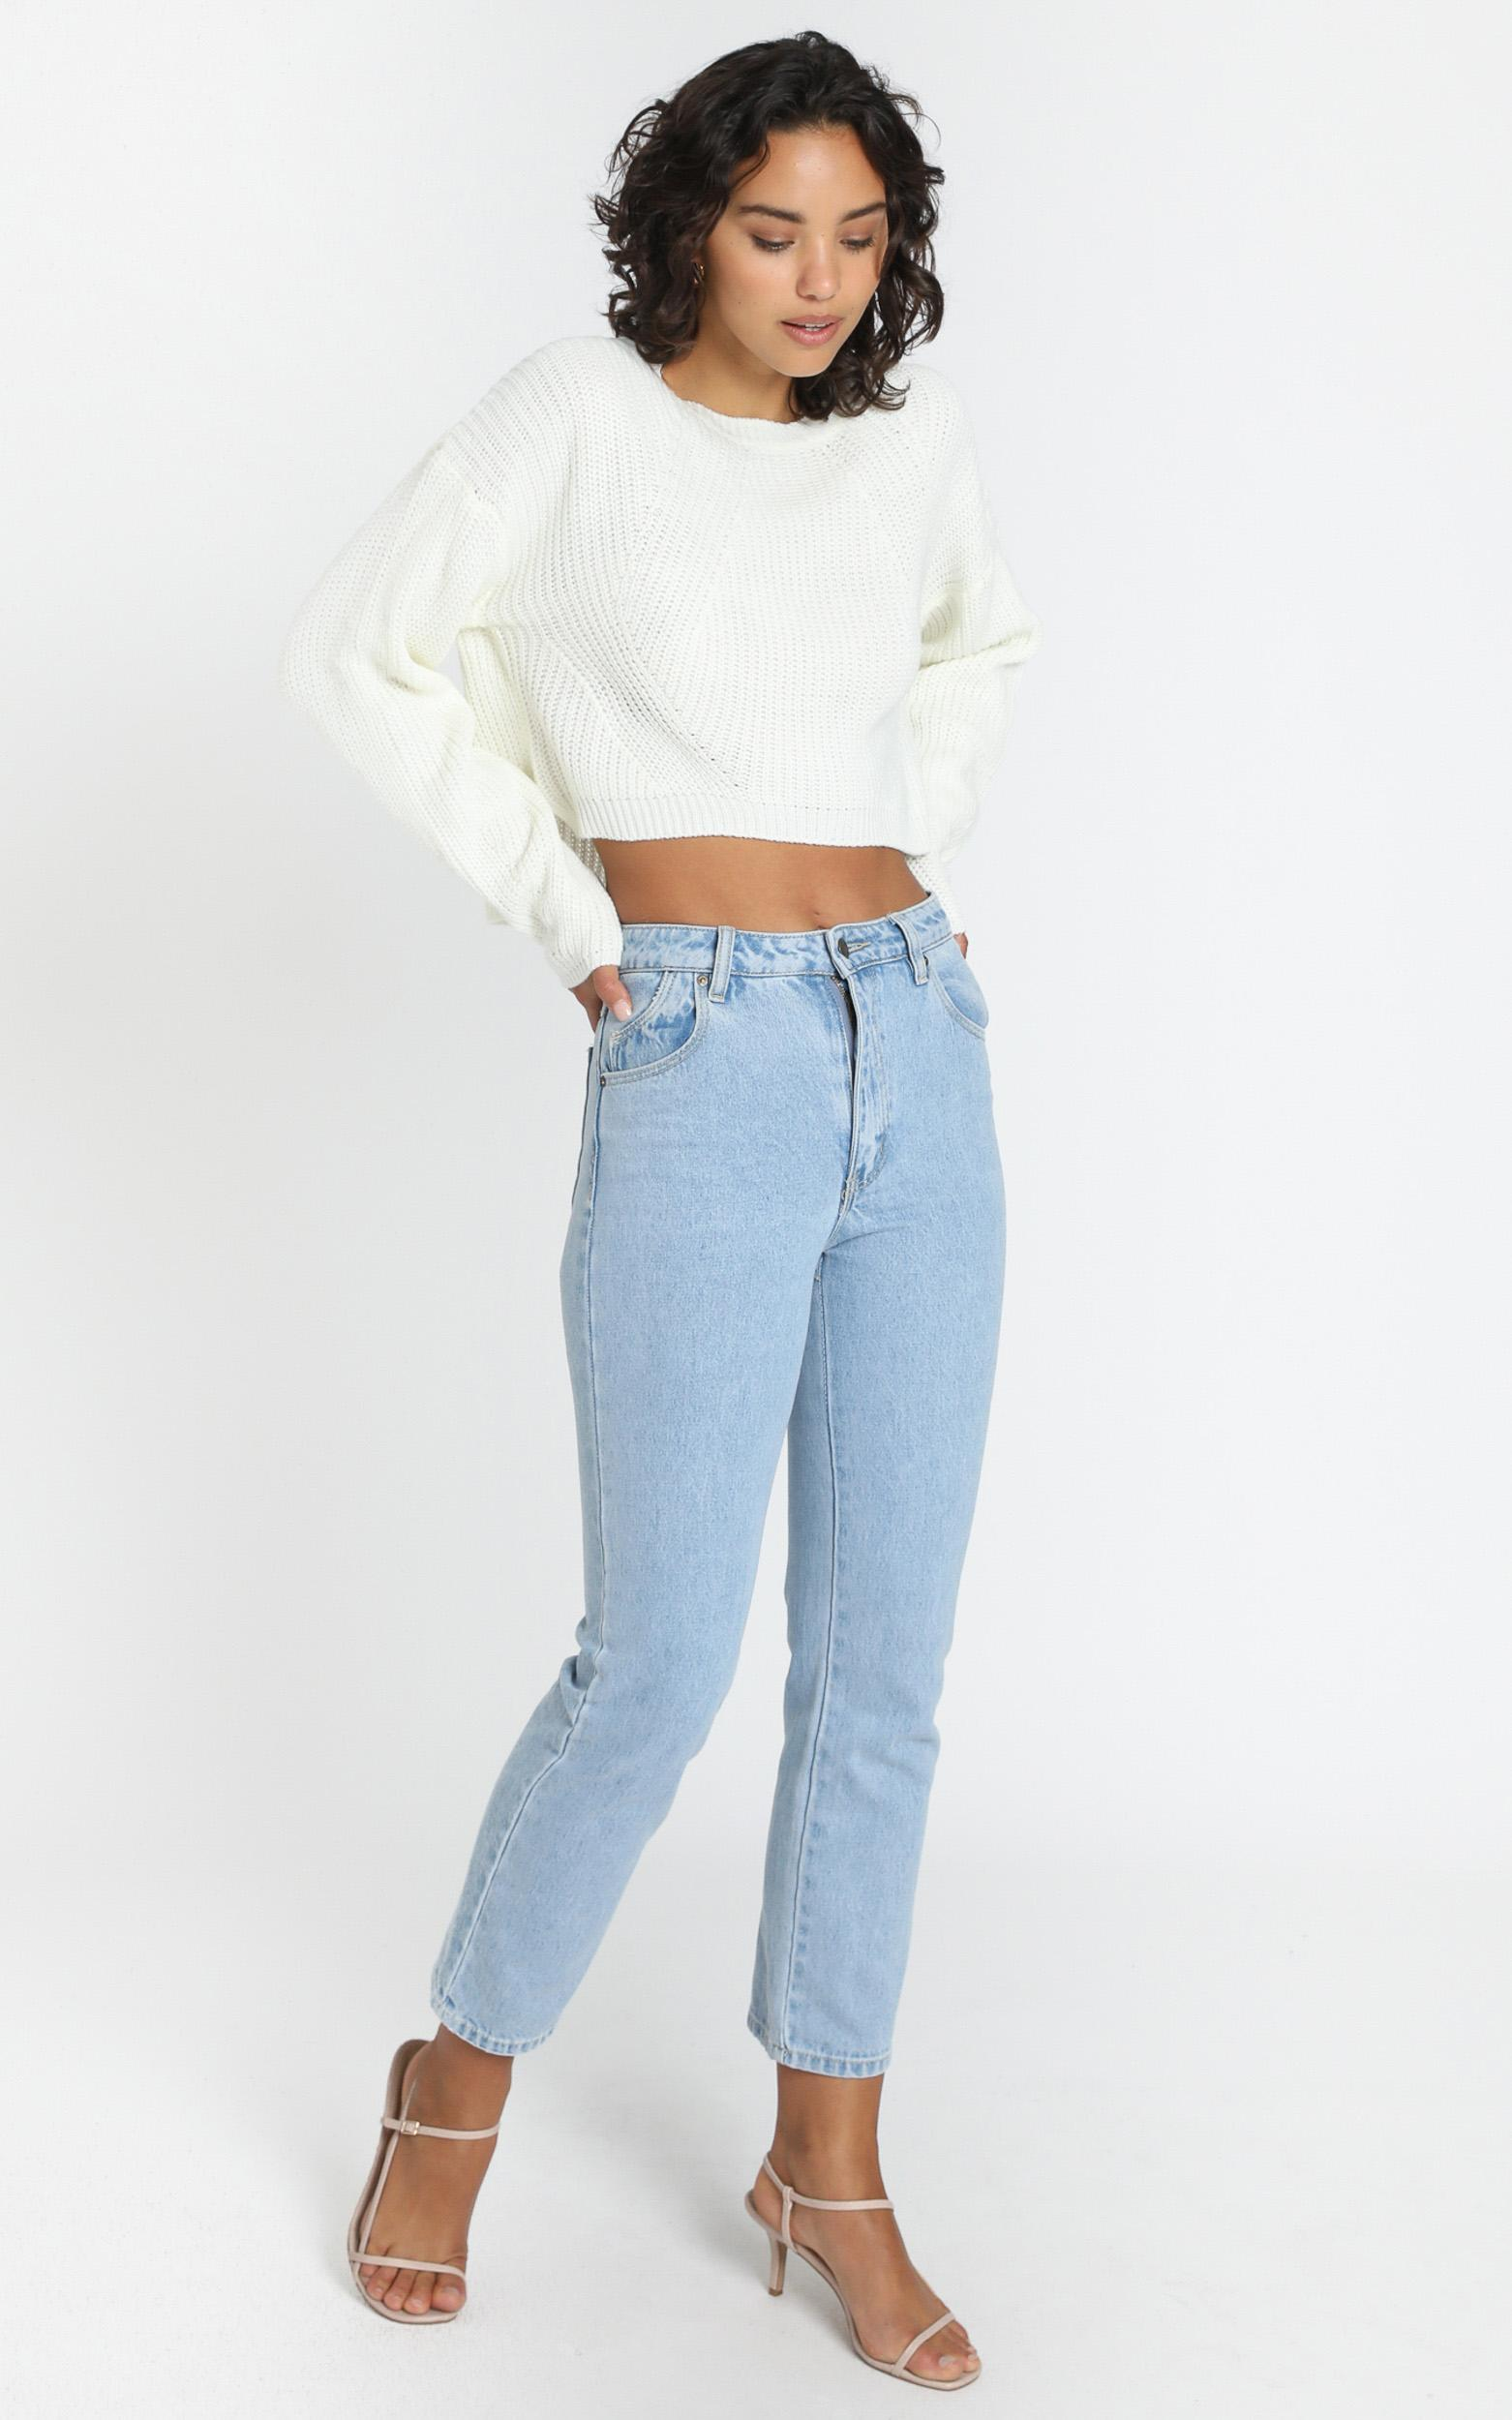 Frankie Cropped Boxy Knit in ivory - S/M, Cream, hi-res image number null